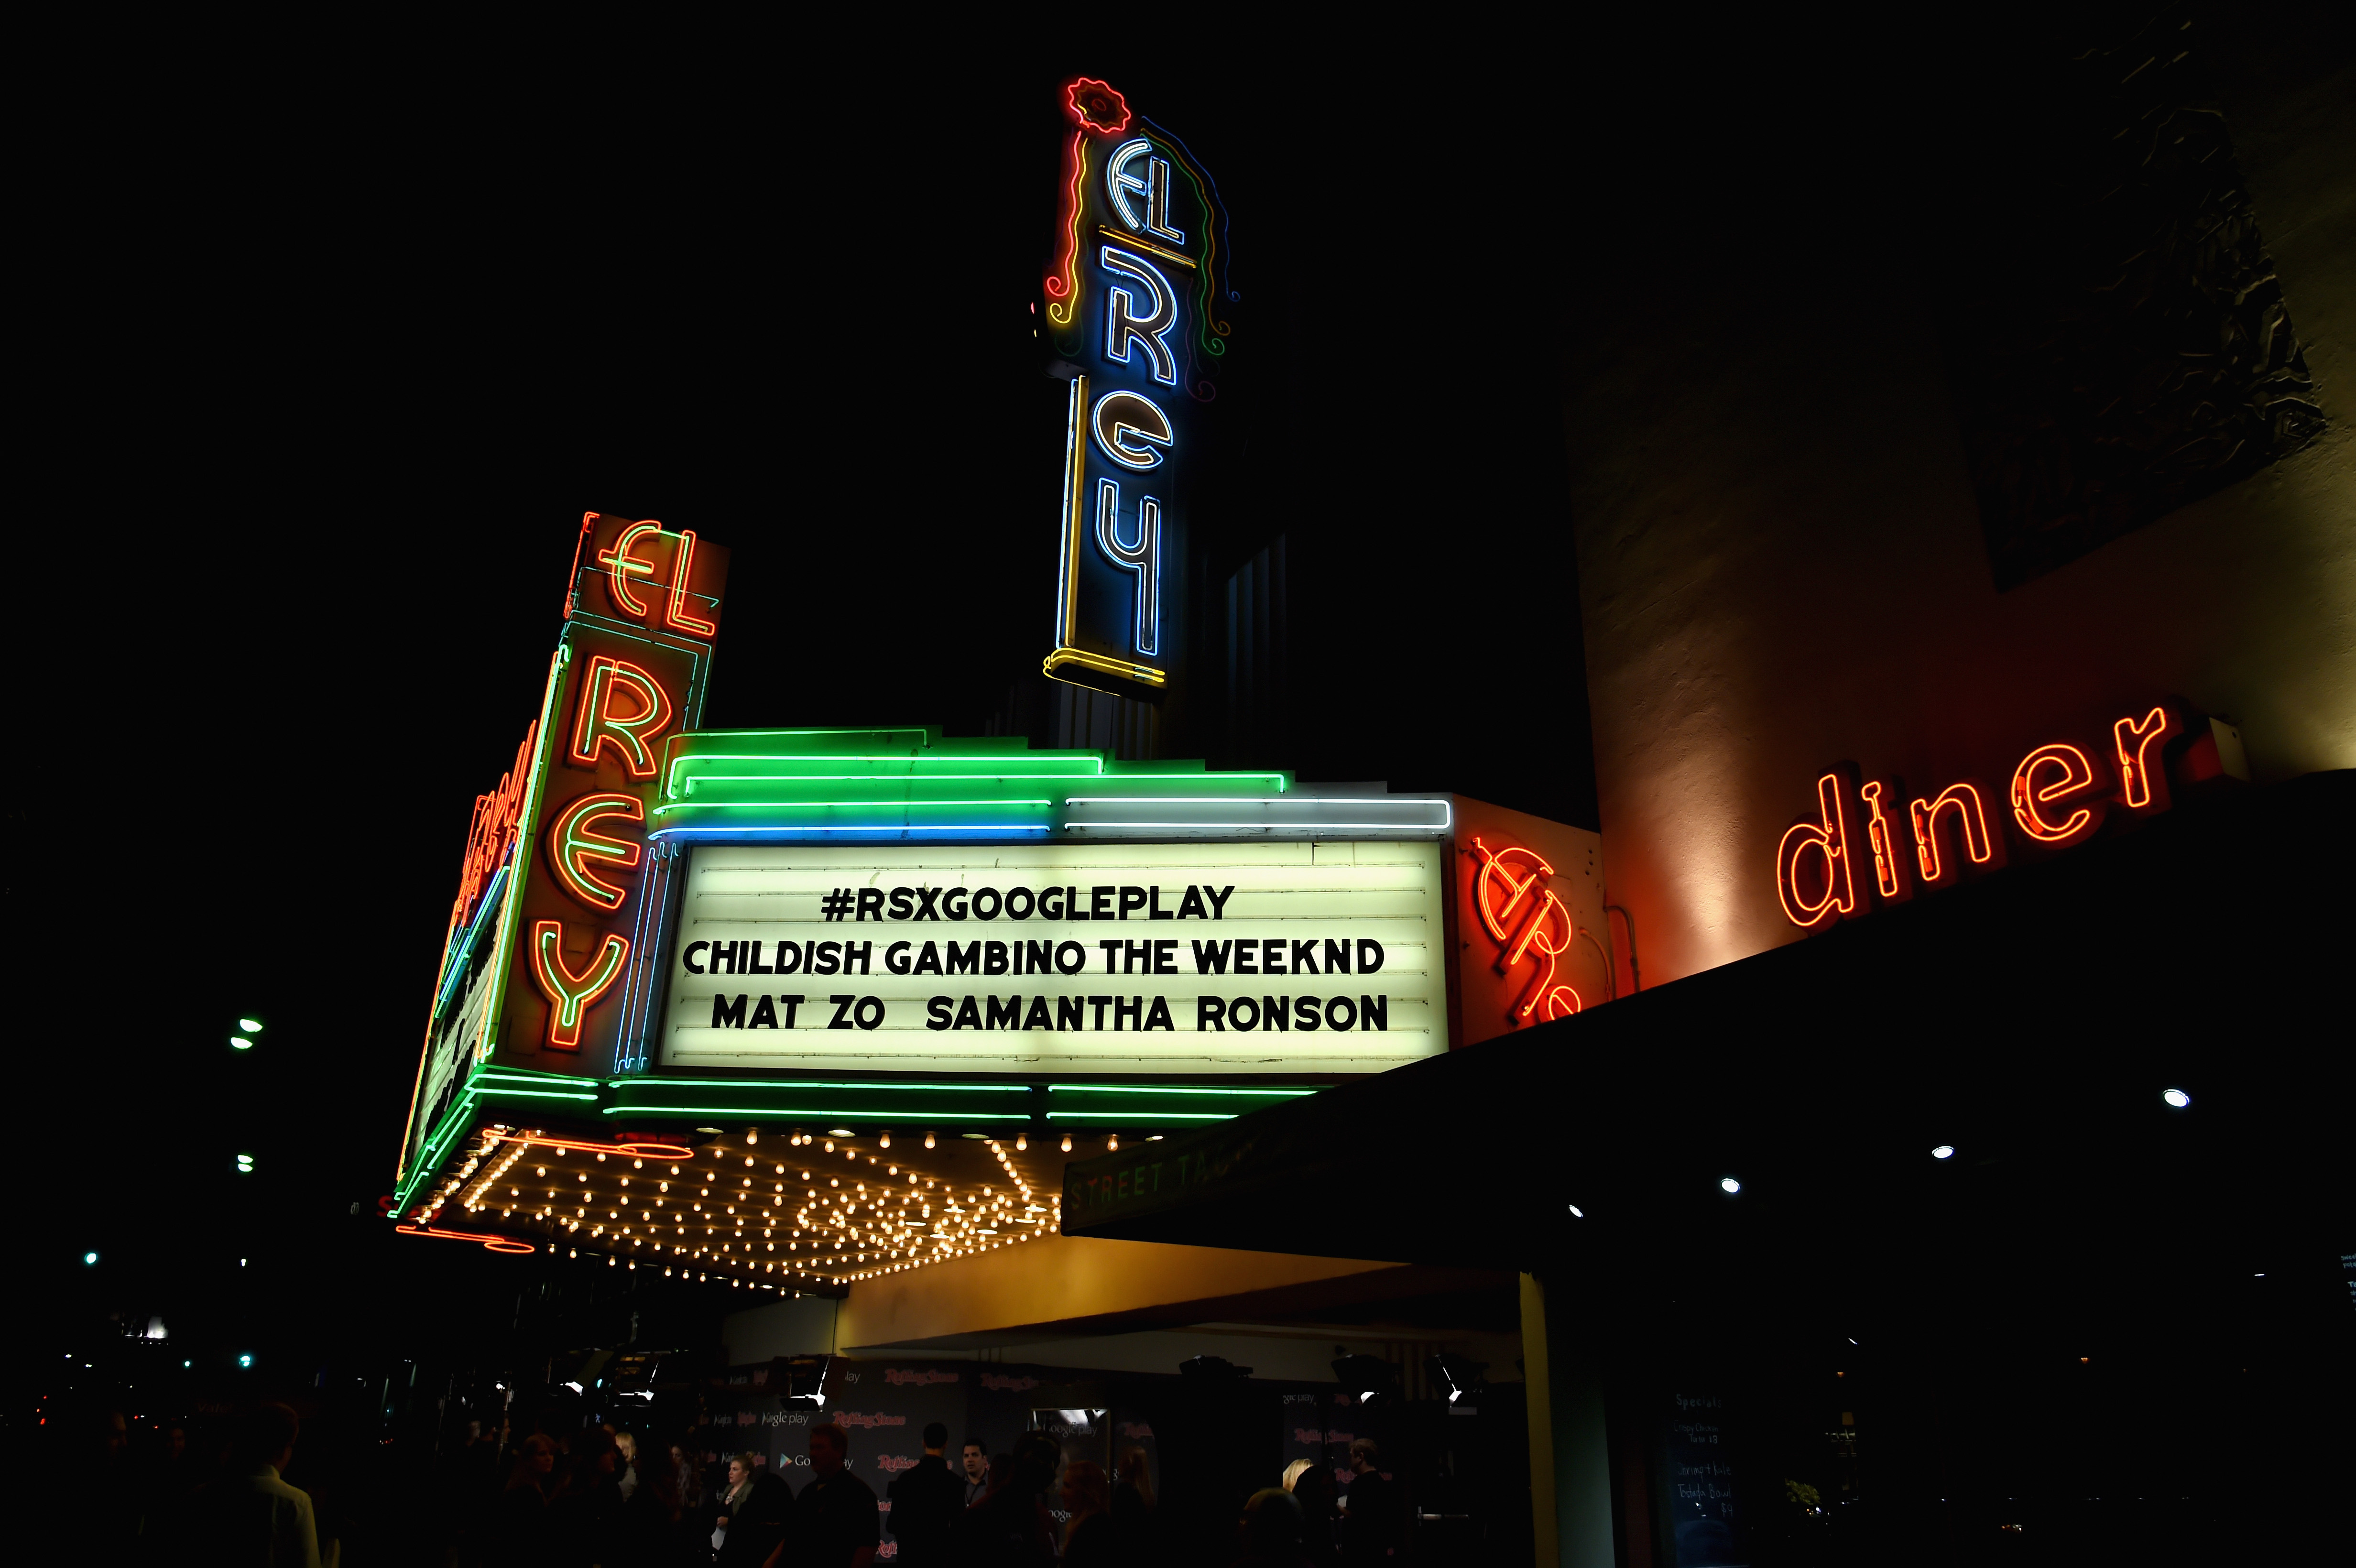 Childish Gambino and the Weeknd Play Rolling Stone's L A